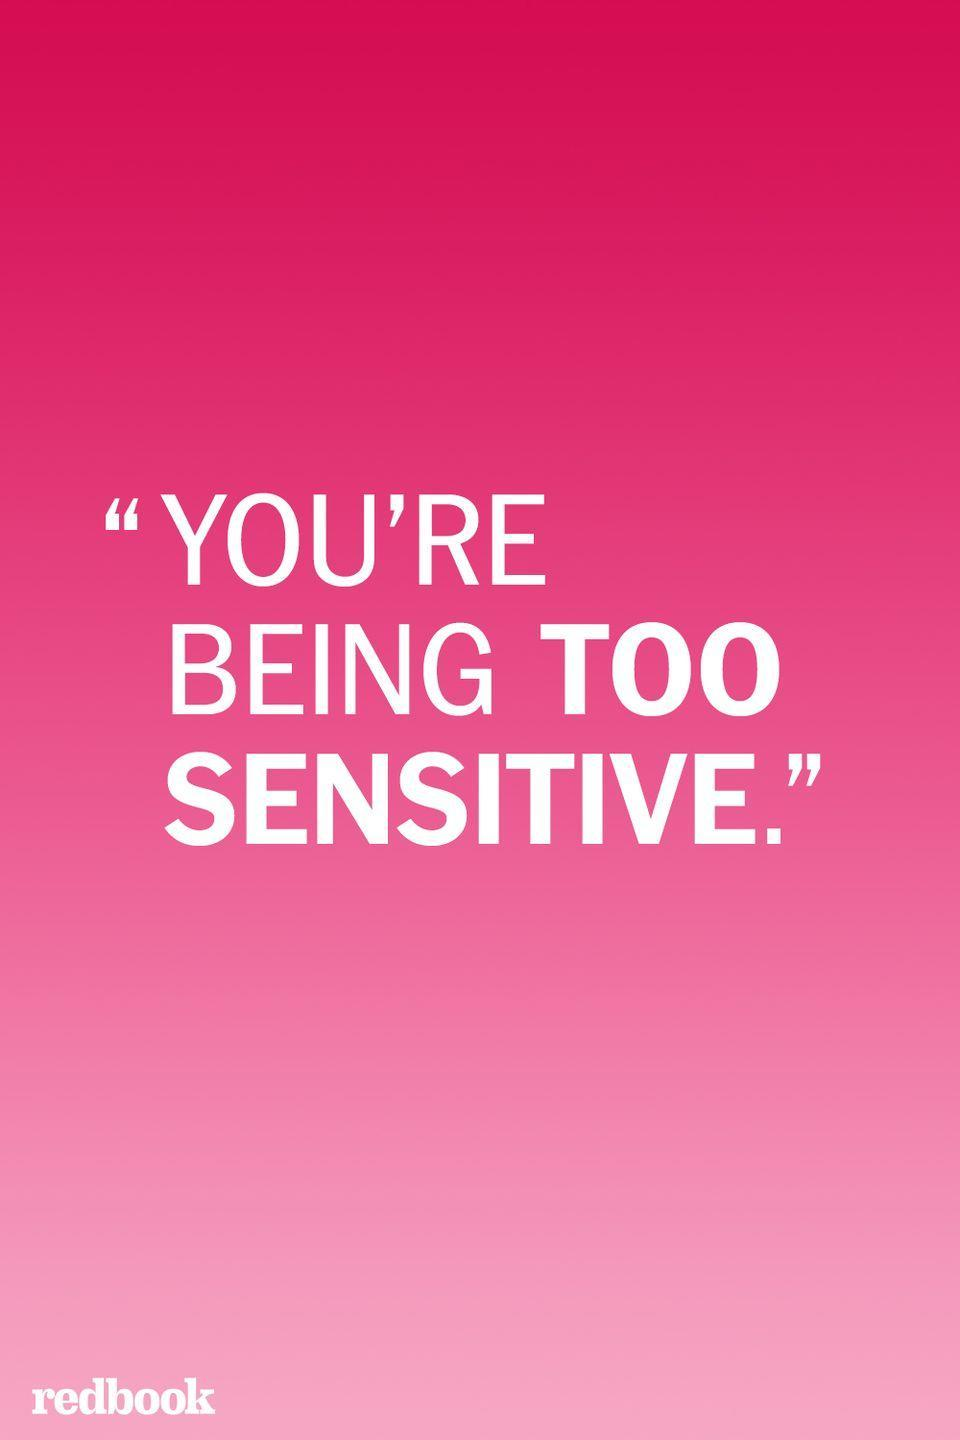 """<p>""""Telling a child that he or she is 'too sensitive' is common behavior among unloving, unattuned parents, since it effectively shifts the responsibility and blame from their behavior to the child's supposed inadequacies. A young child doesn't have the self confidence to counter this assertion and will assume that she's done something wrong. She will often believe that her sensitivity is the problem and that, in turn, leads her to mistrust both her feelings and perceptions,"""" Peg Streep, author of <em>Daughter Detox: Recovering from an Unloving Mother and Reclaiming Your Life </em>told <em><a href=""""https://www.psychologytoday.com/us/blog/tech-support/201601/5-things-loving-parents-would-never-say"""" rel=""""nofollow noopener"""" target=""""_blank"""" data-ylk=""""slk:Psychology Today"""" class=""""link rapid-noclick-resp"""">Psychology Today</a>. </em>""""It is highly damaging because there are numerous take-away lessons, such as: 'What you feel doesn't matter to me or anyone else,' and, 'The fault is yours because something is wrong with you.'"""" </p>"""